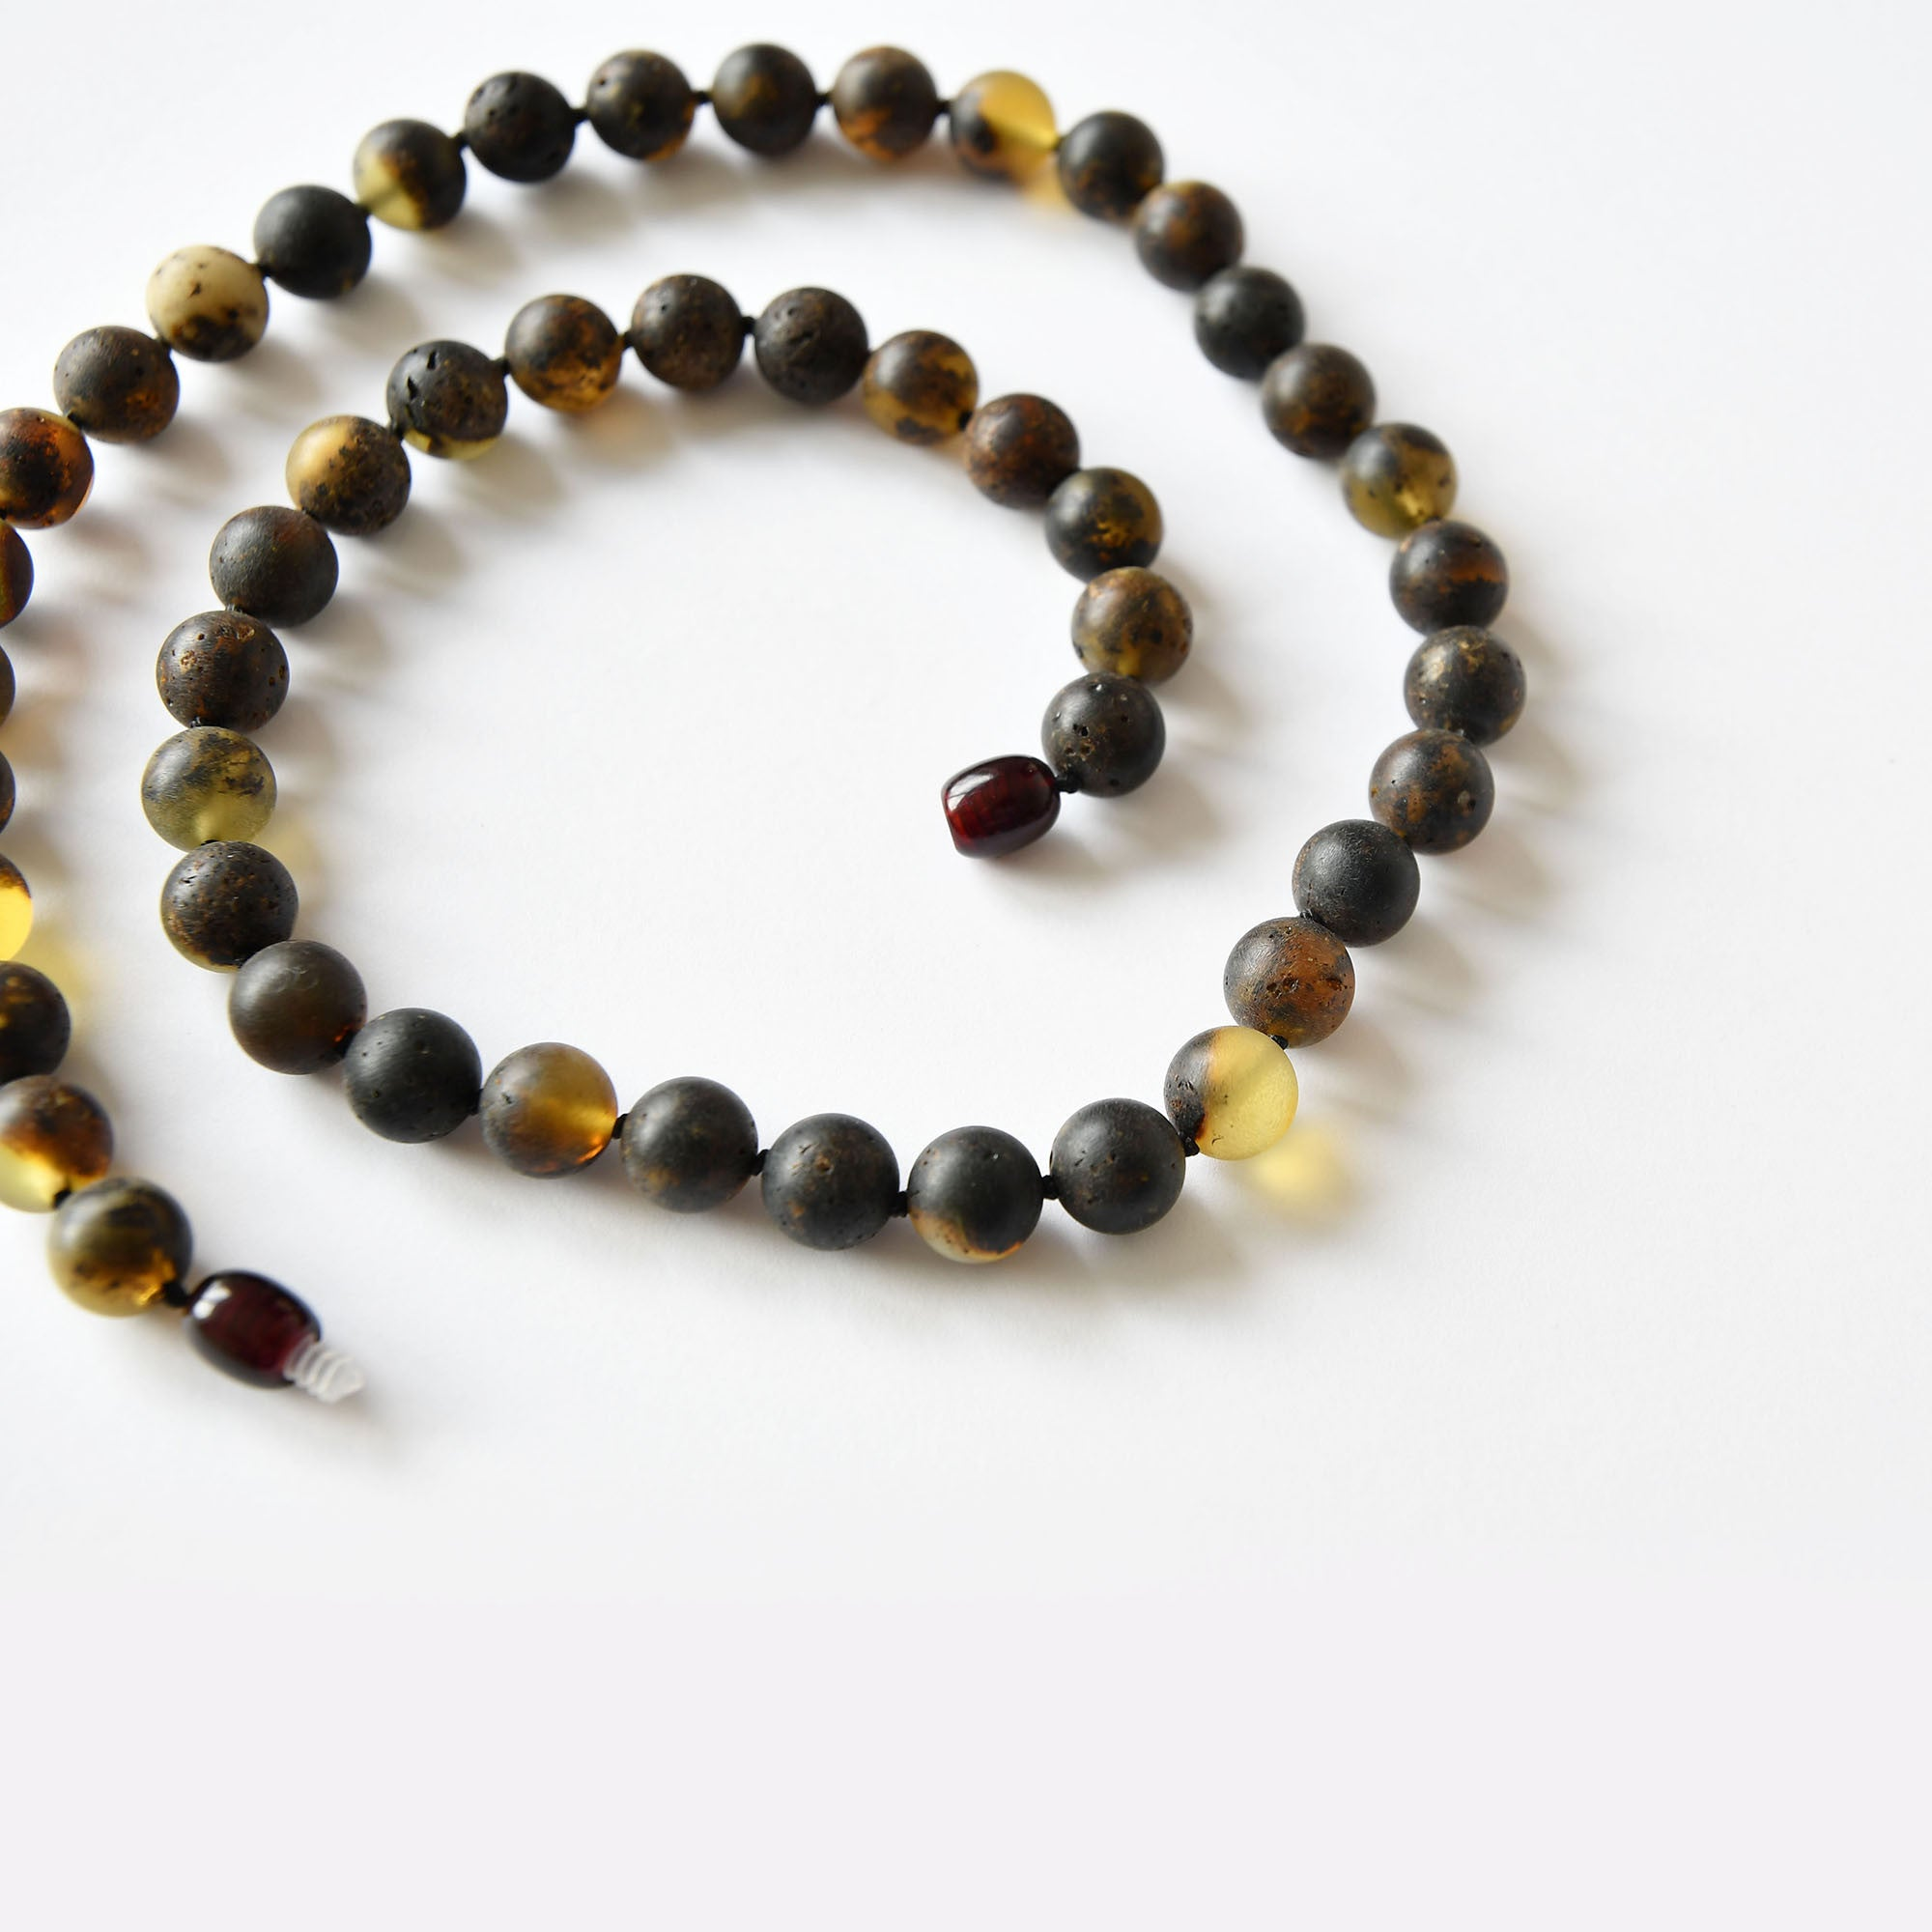 Amber beads of perfectly round black unpolished amber balls